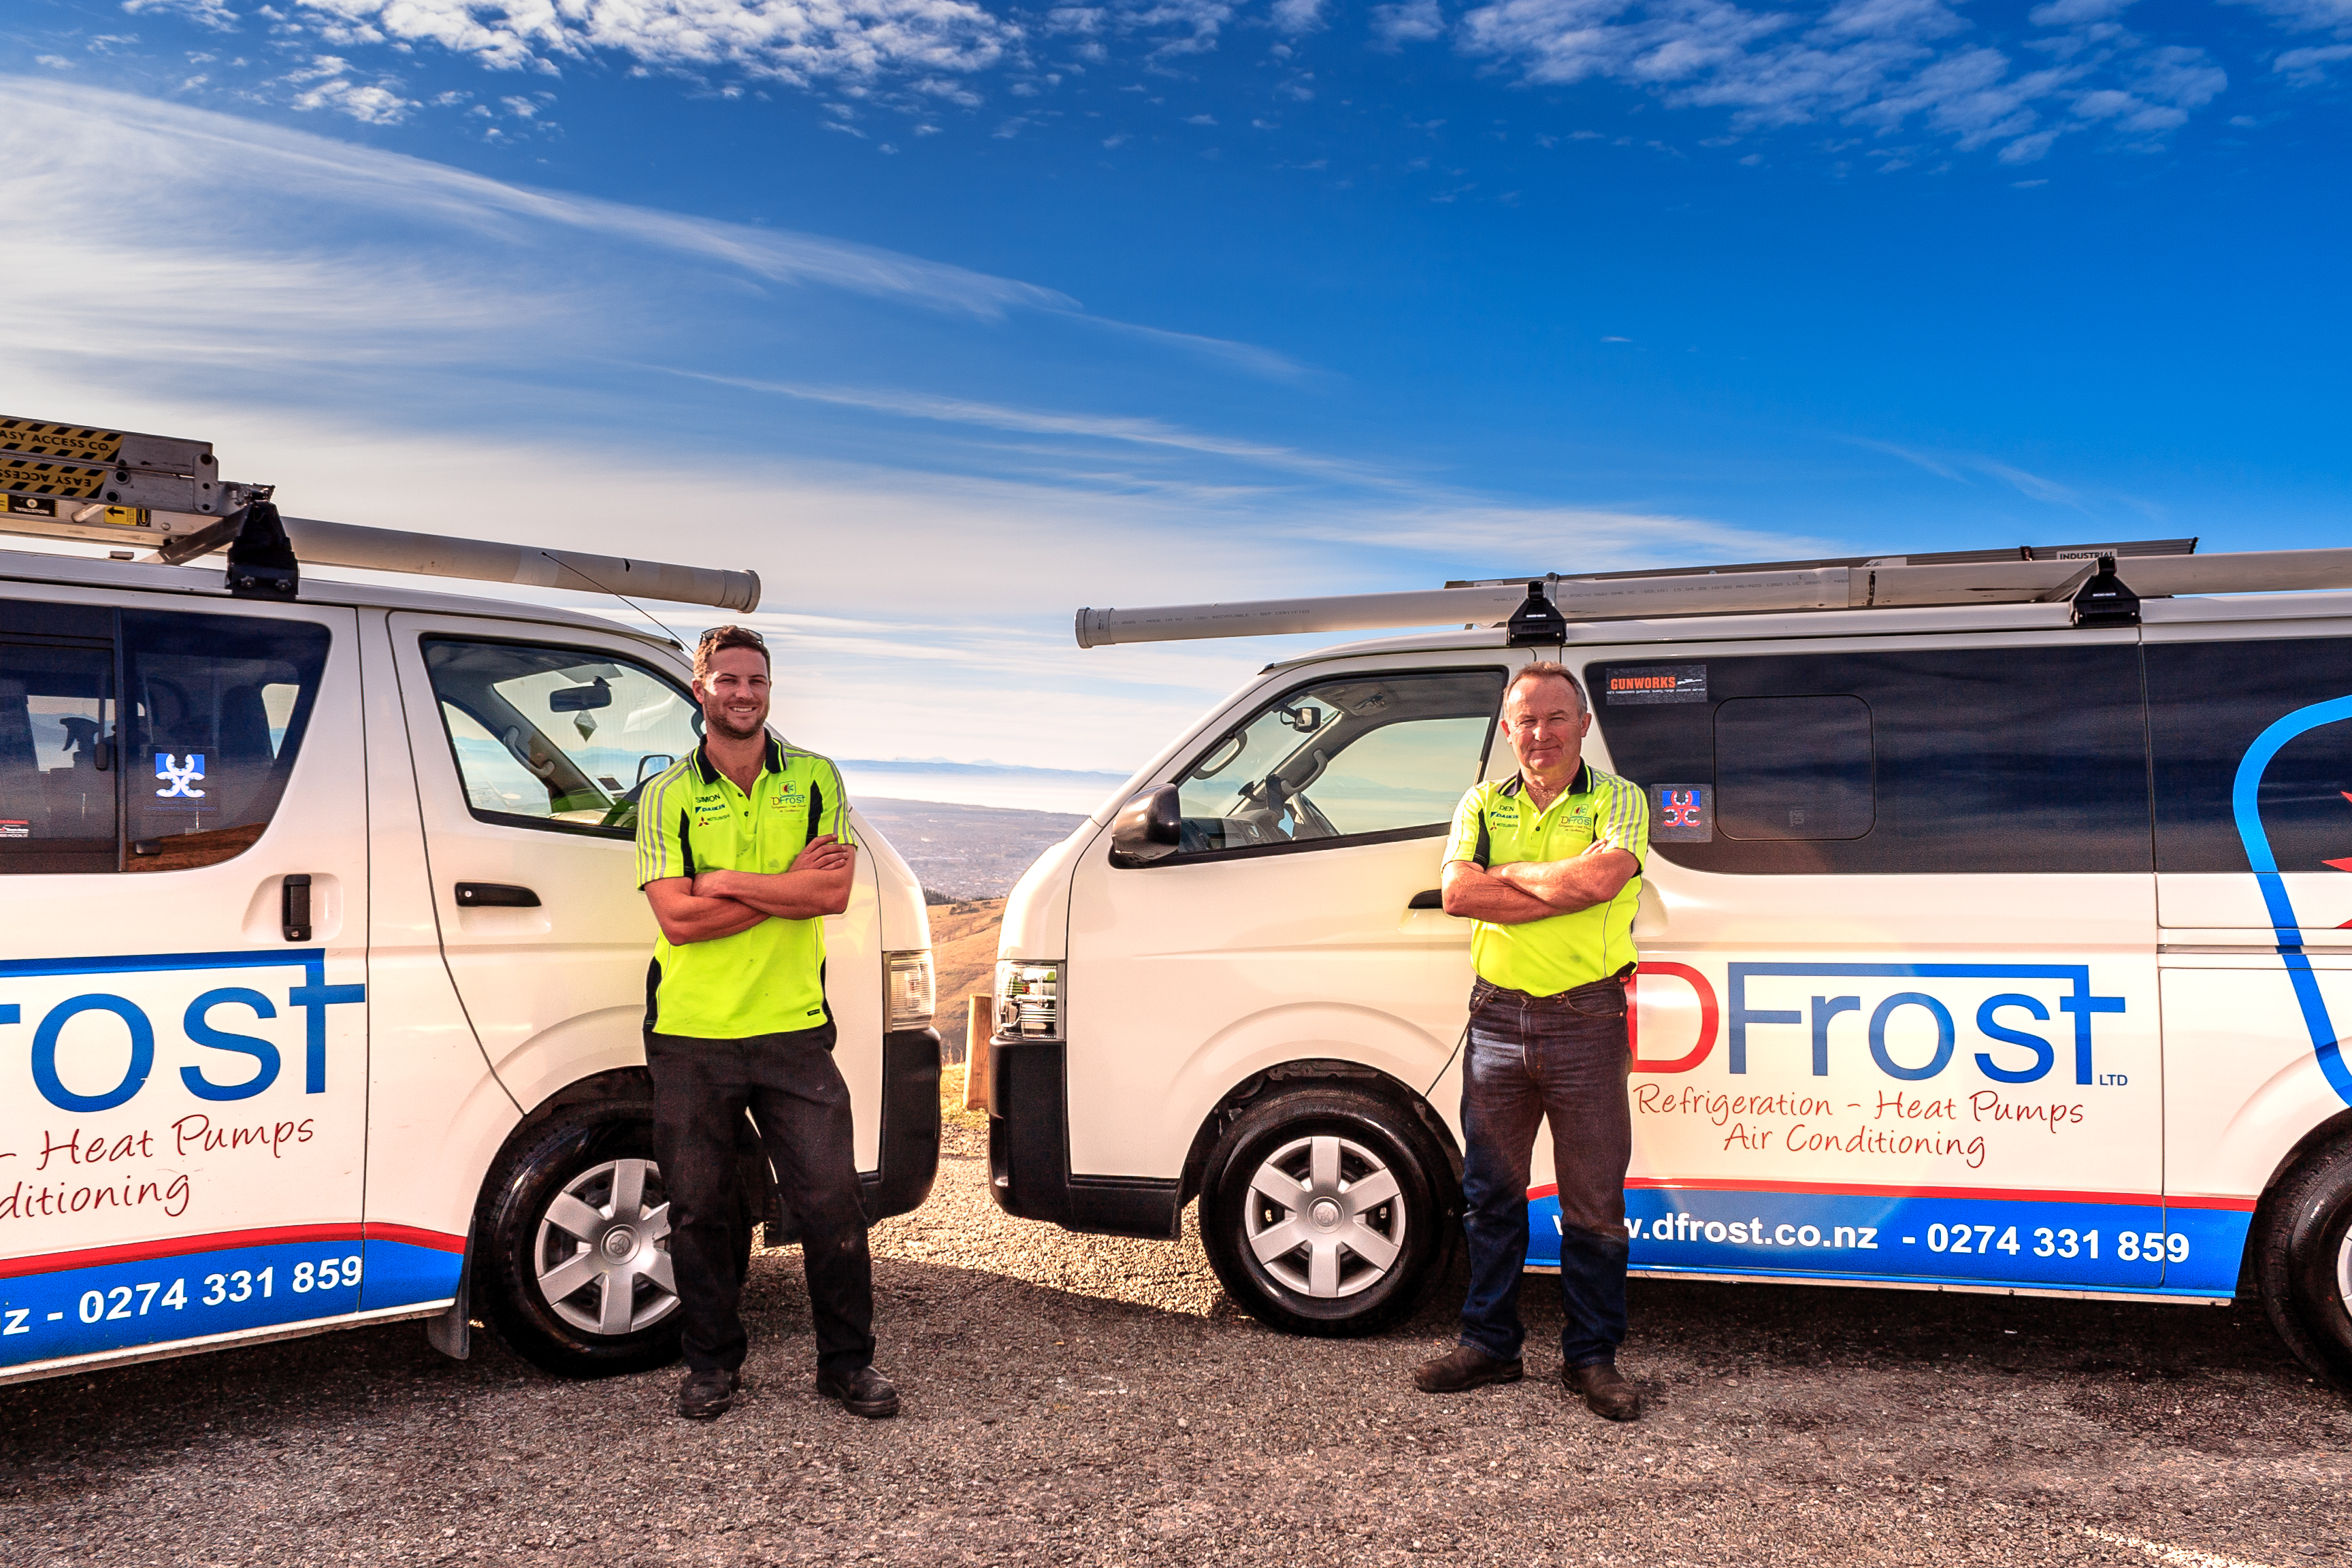 simon and dennis in front of dfrost work vans